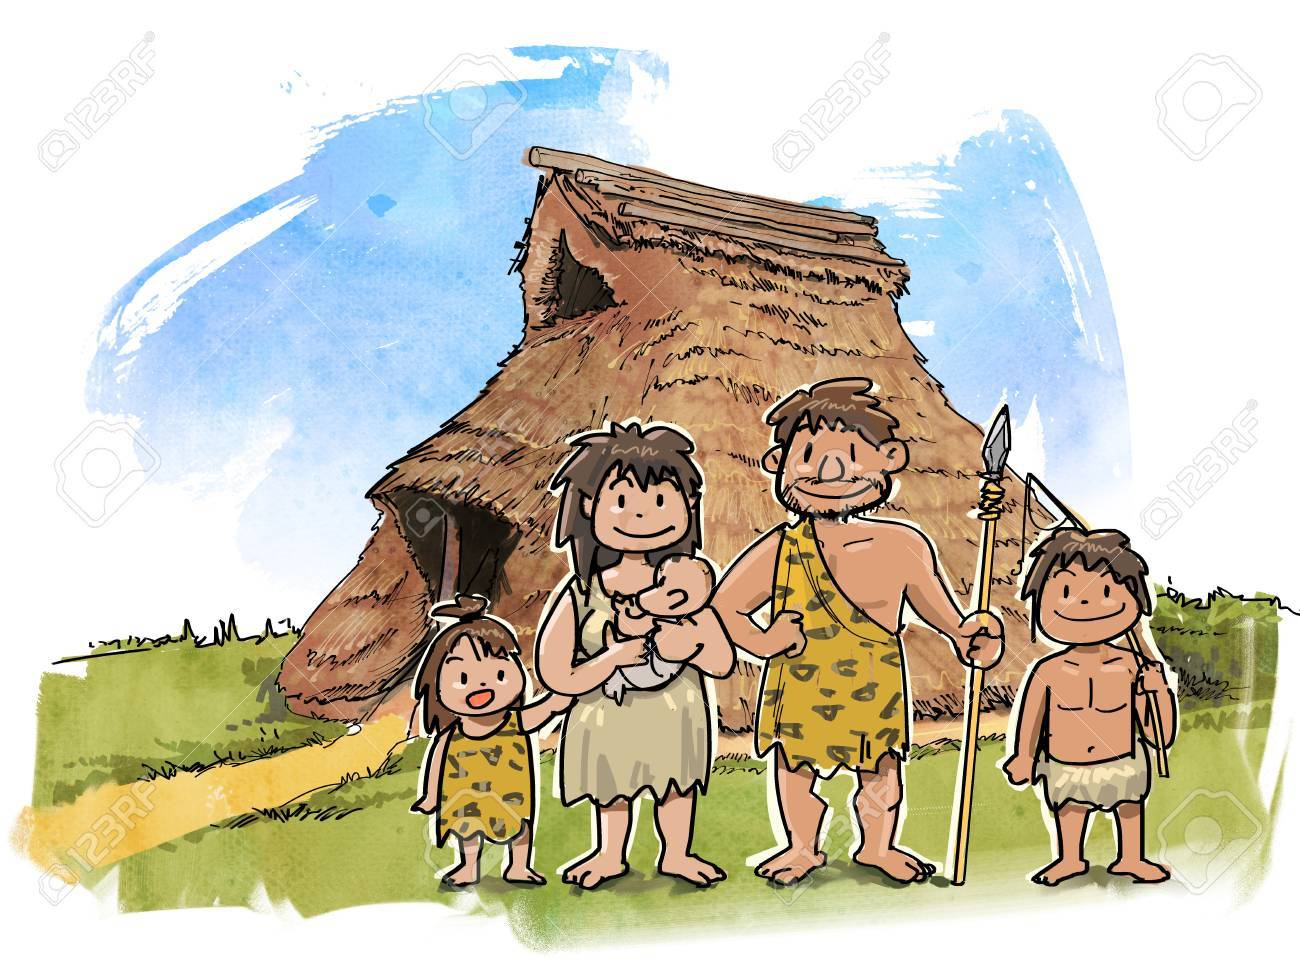 Pit Houses And Families Stock Photo Picture And Royalty Free Image Image 56800430